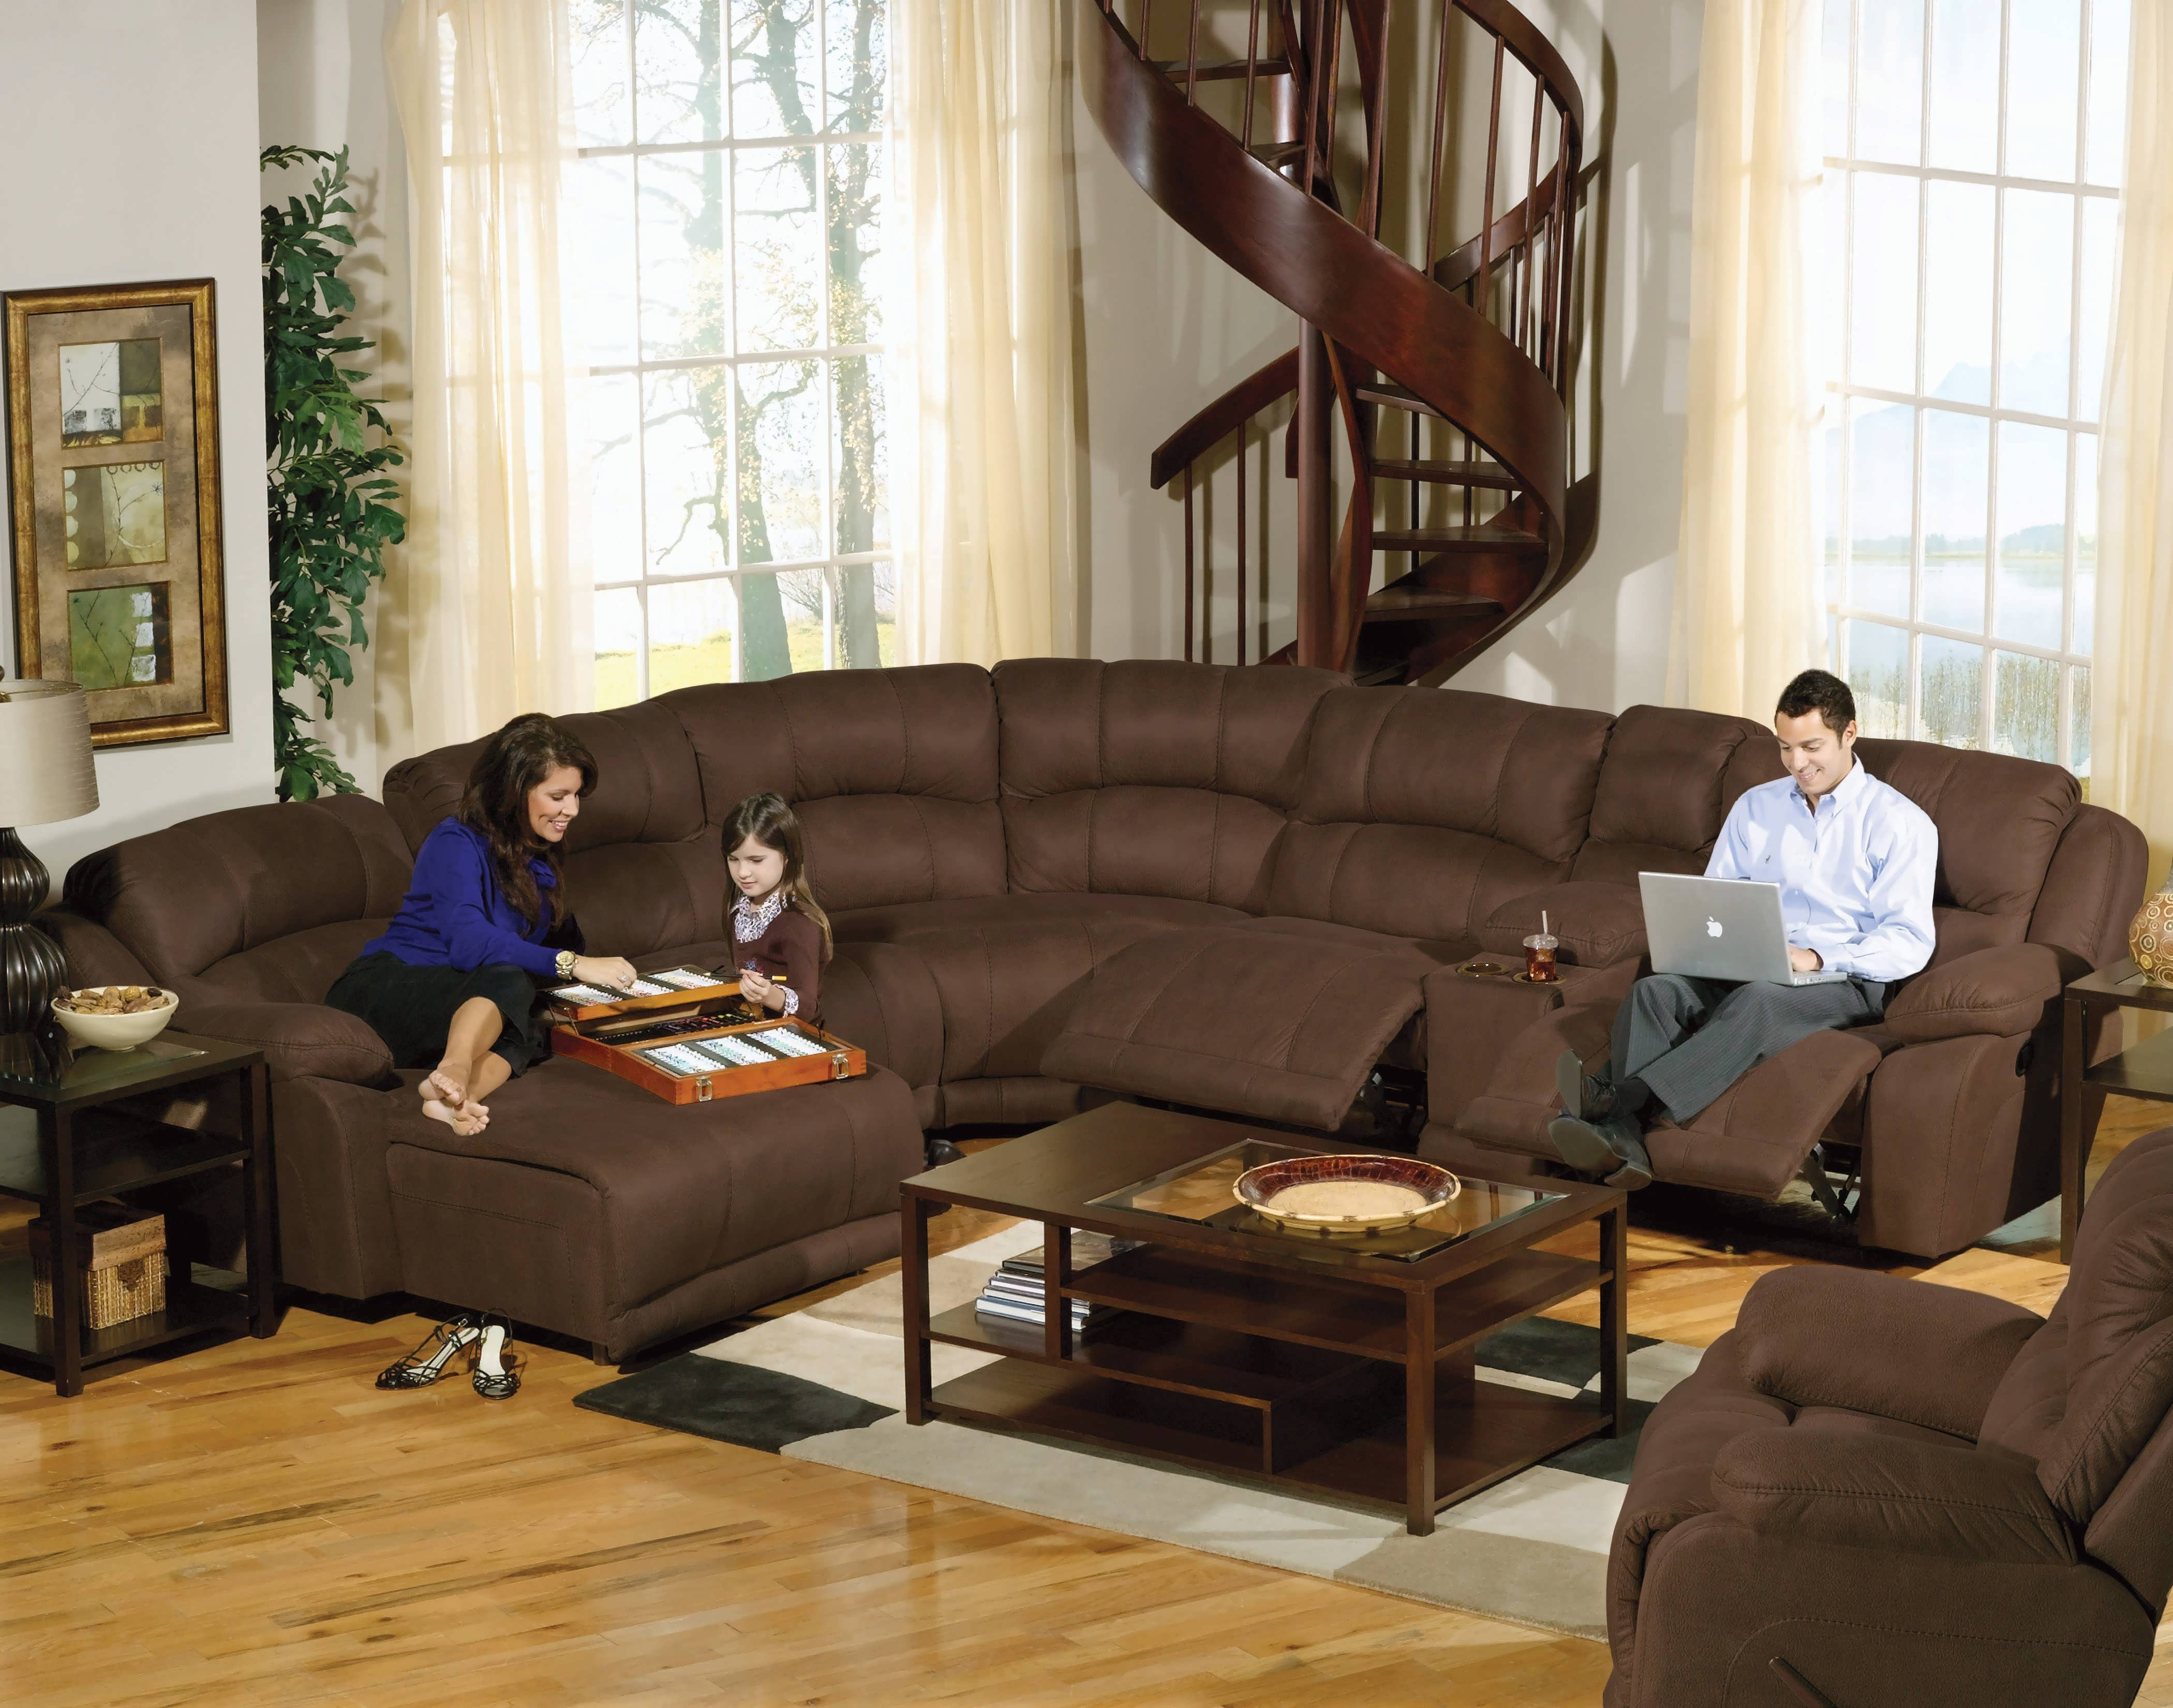 2017 Sofa : Leather Sectional Sofa With Chaise Huge Sectional Sofas With Regard To Sectional Sofas With Recliners And Chaise (View 1 of 15)